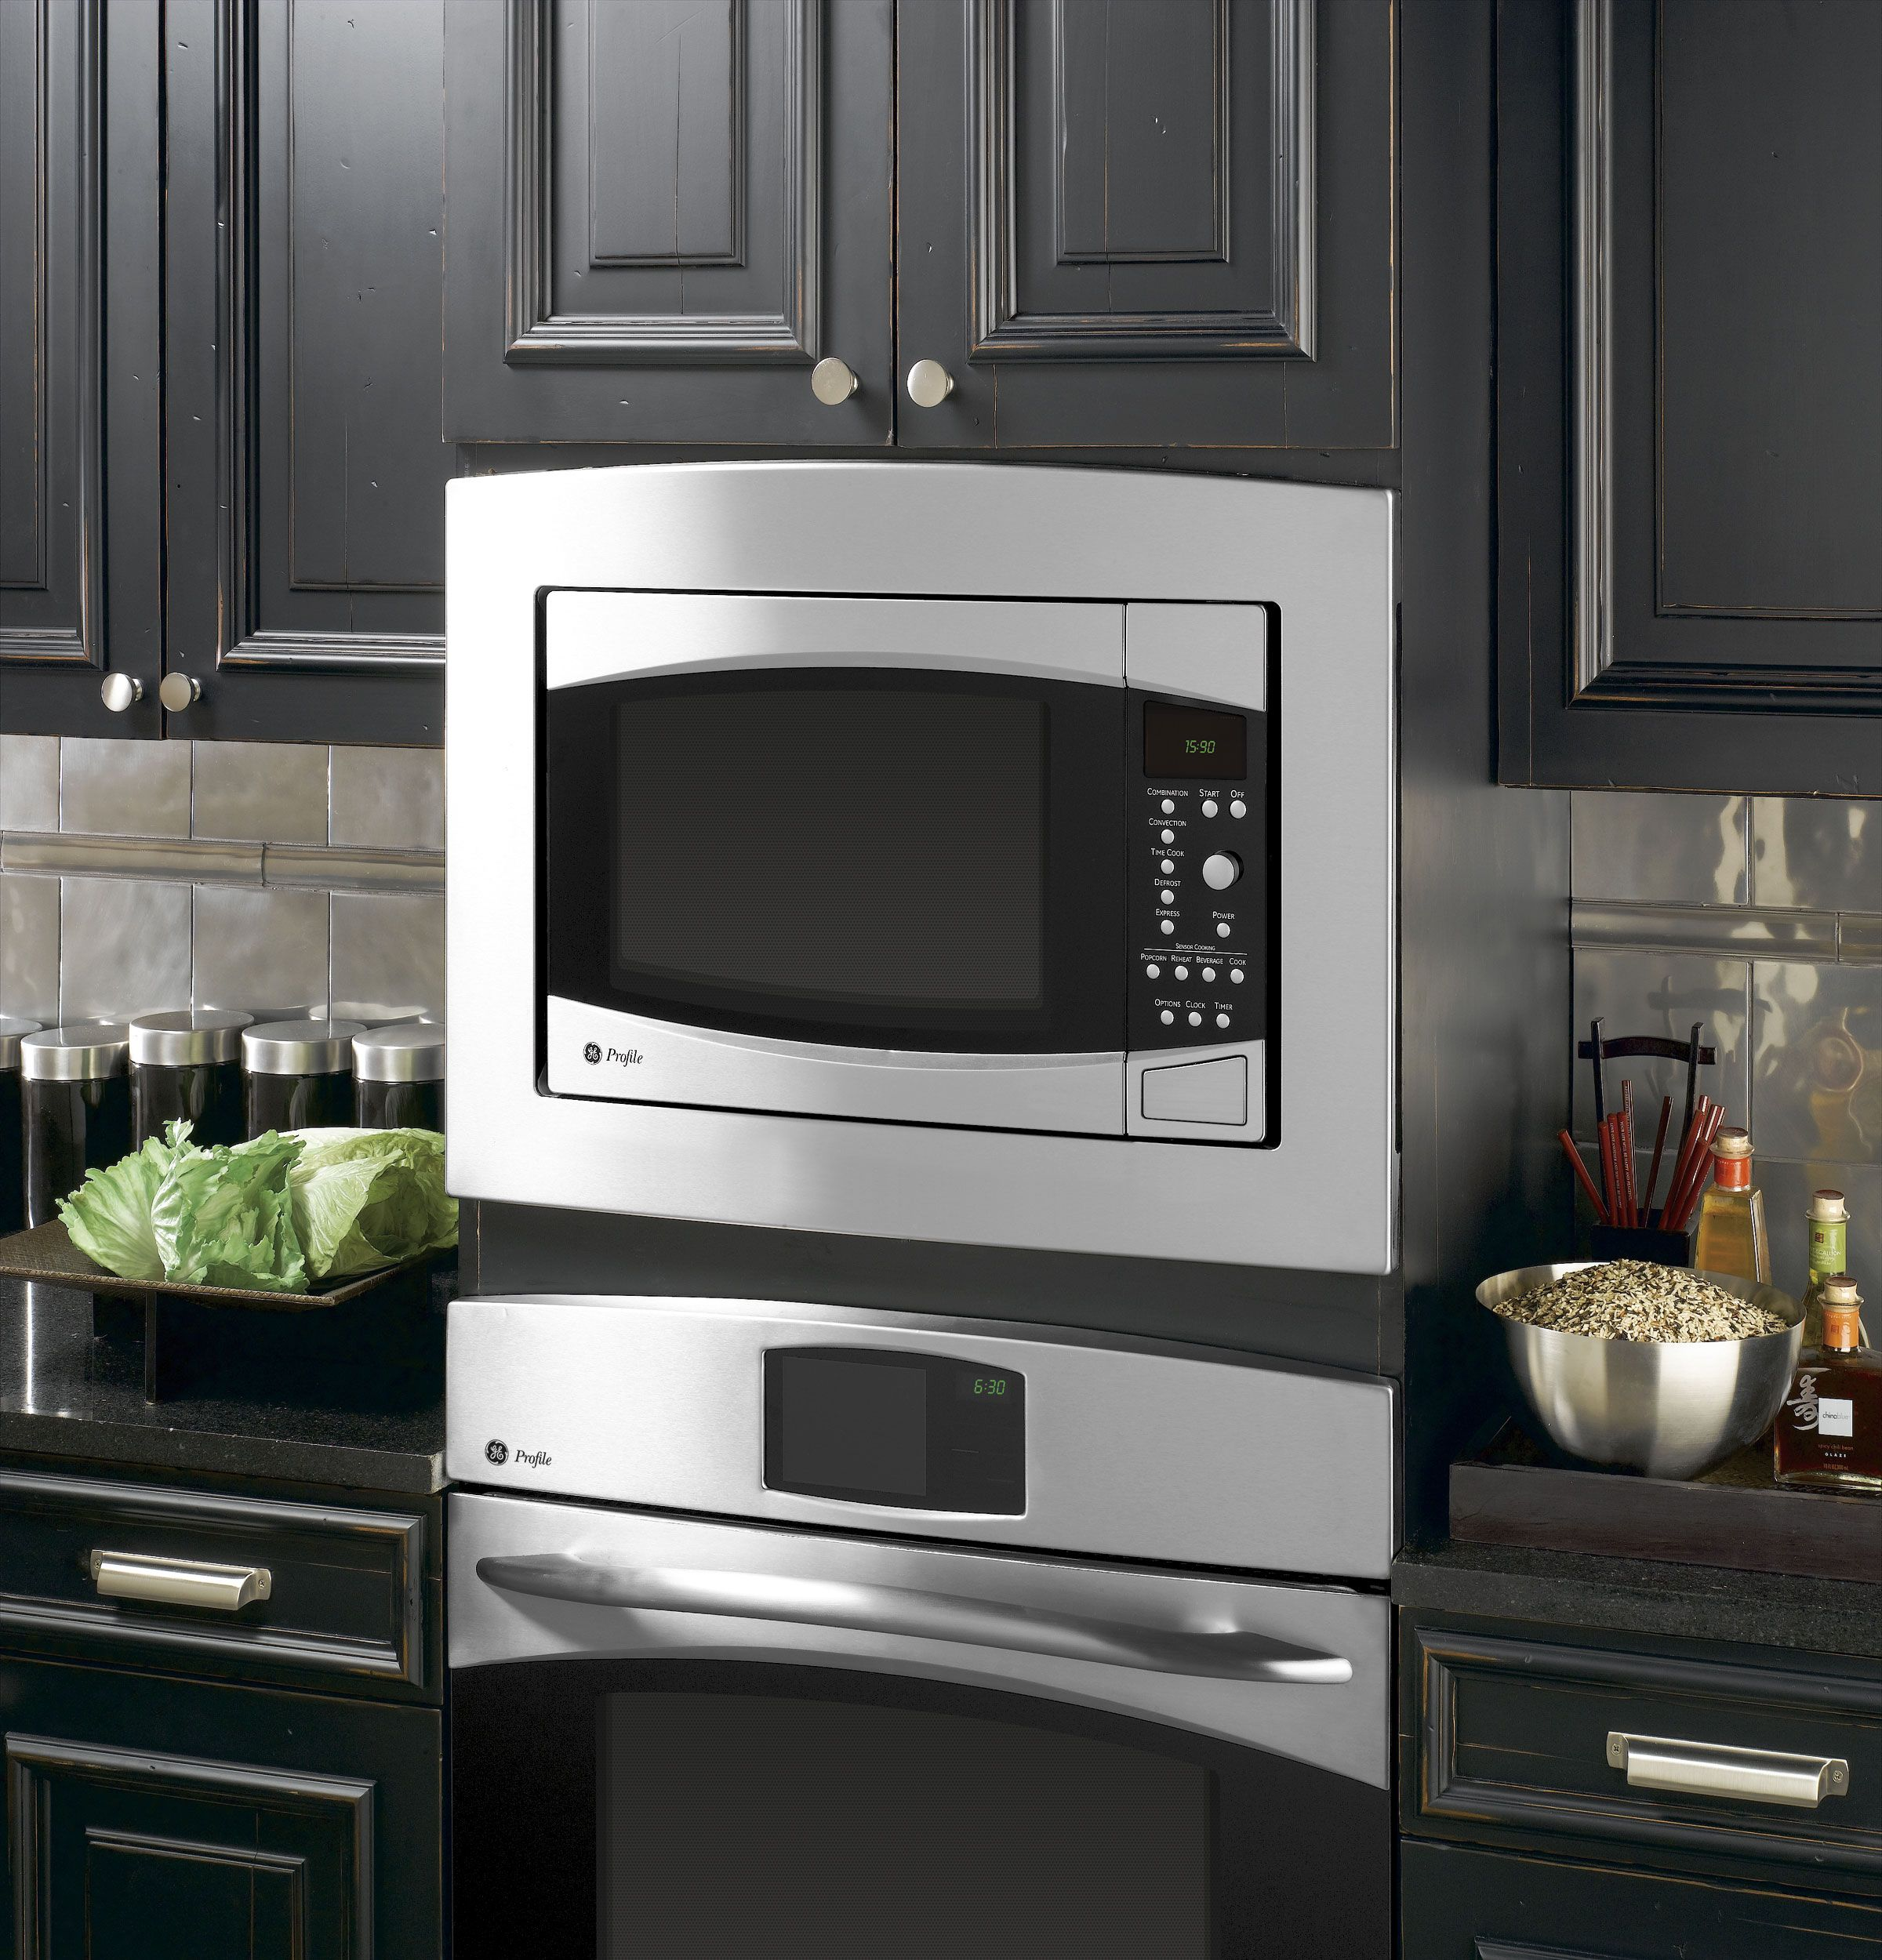 Ge Profile Microwave With Trim Kit Above Ge Oven Microwave Wall